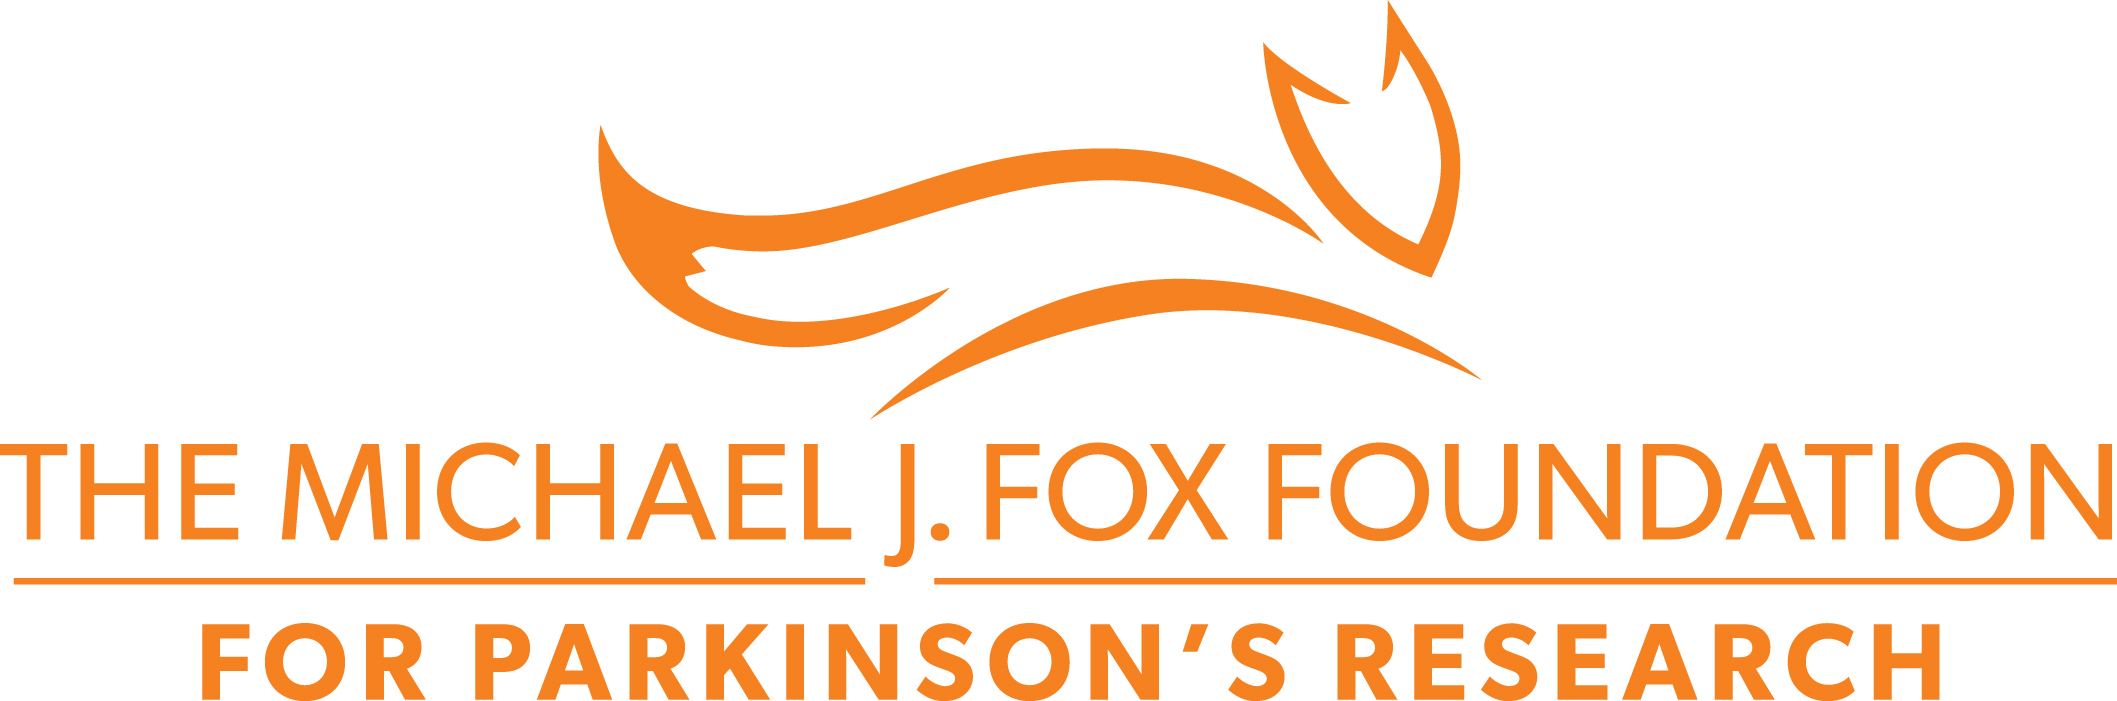 The Michael J. Fox Foundation for Parkinson